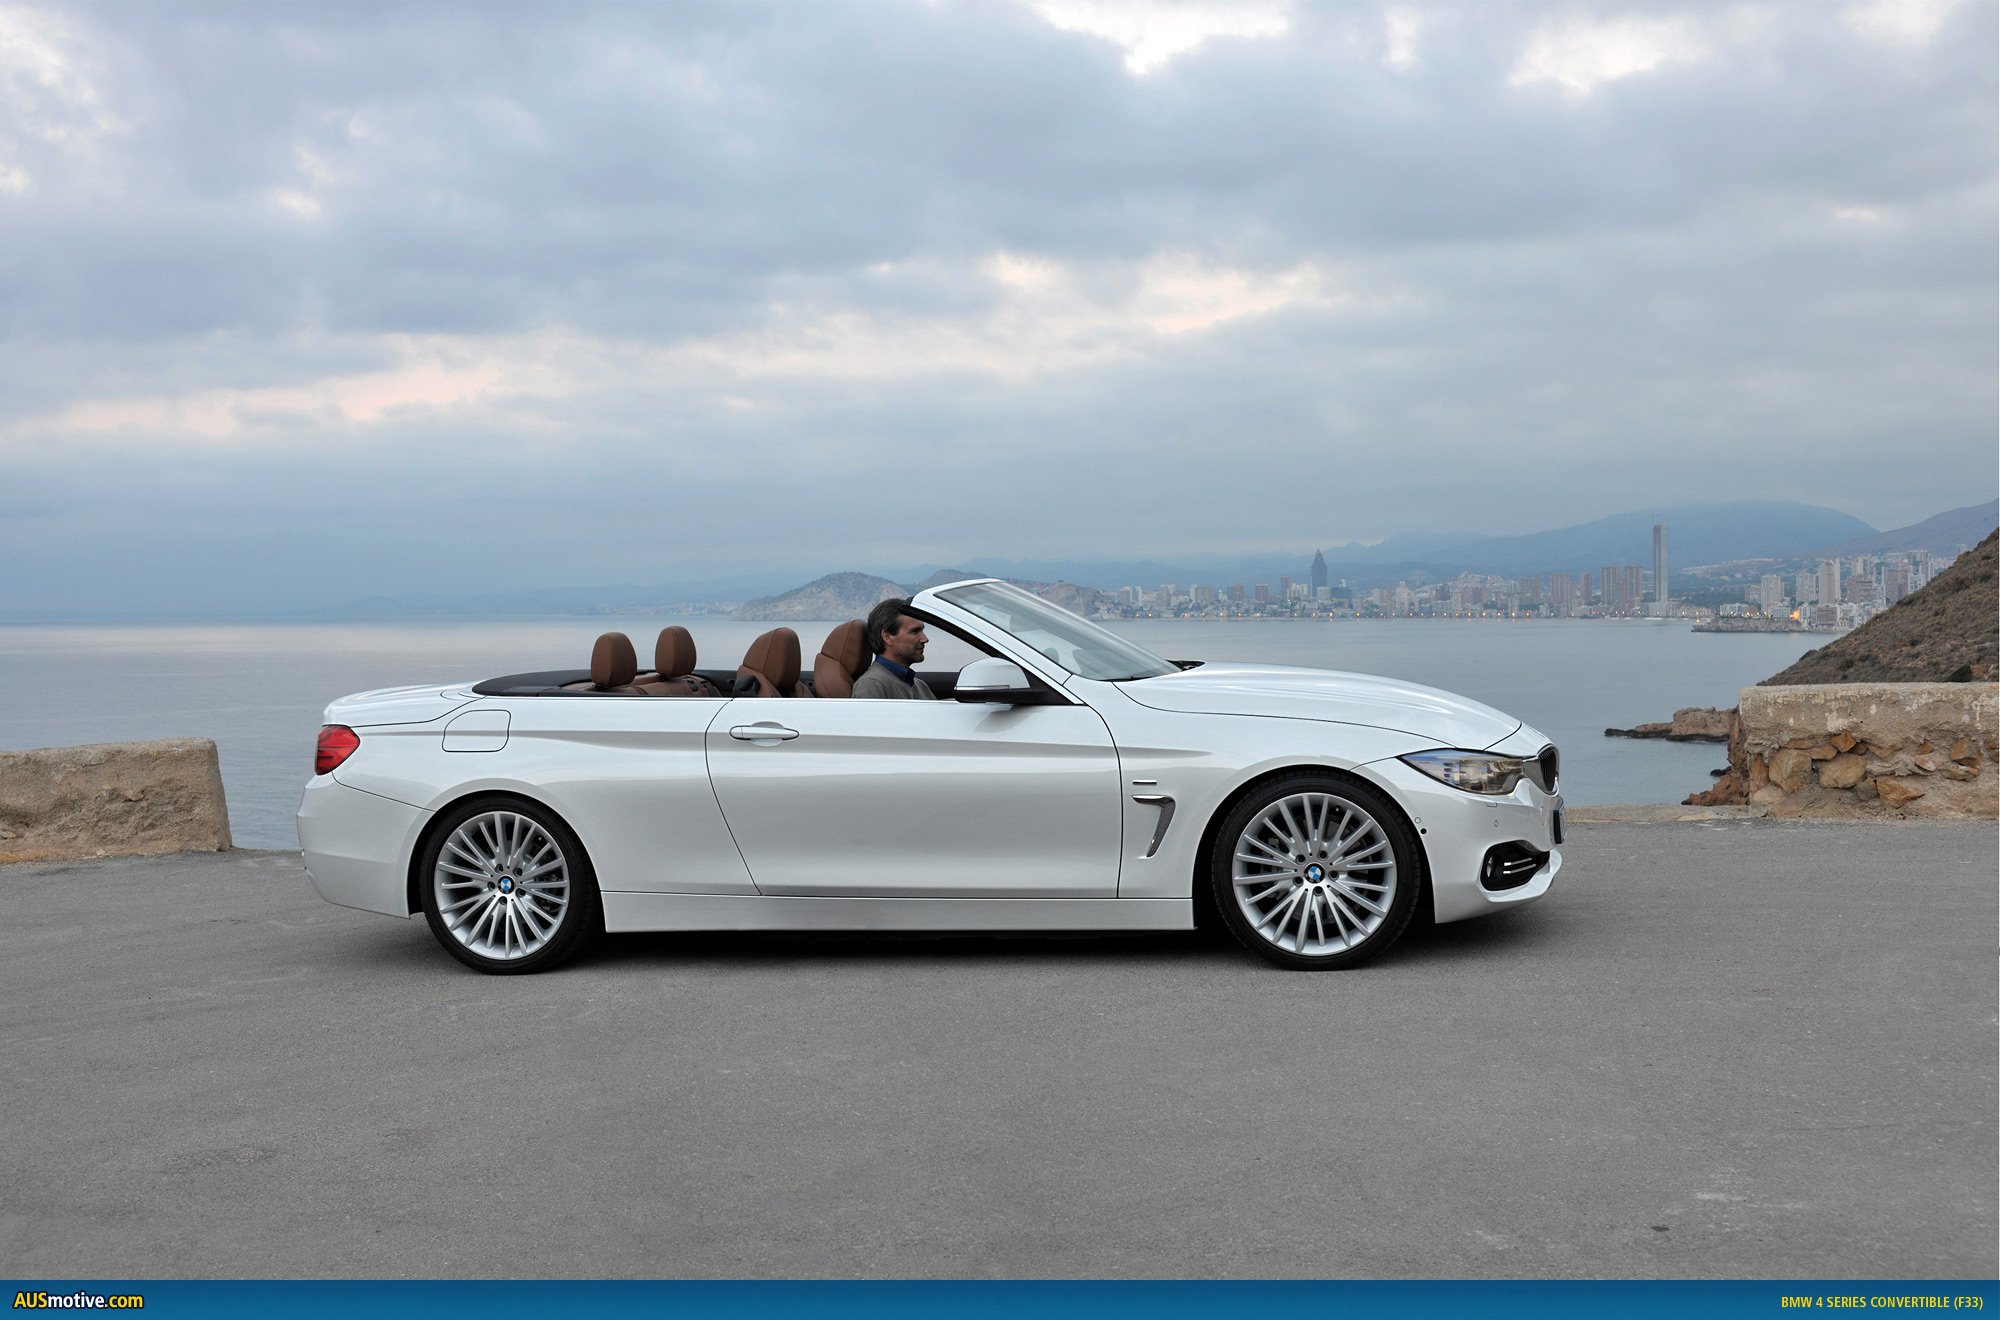 AUSmotive.com » BMW 4 Series Convertible revealed